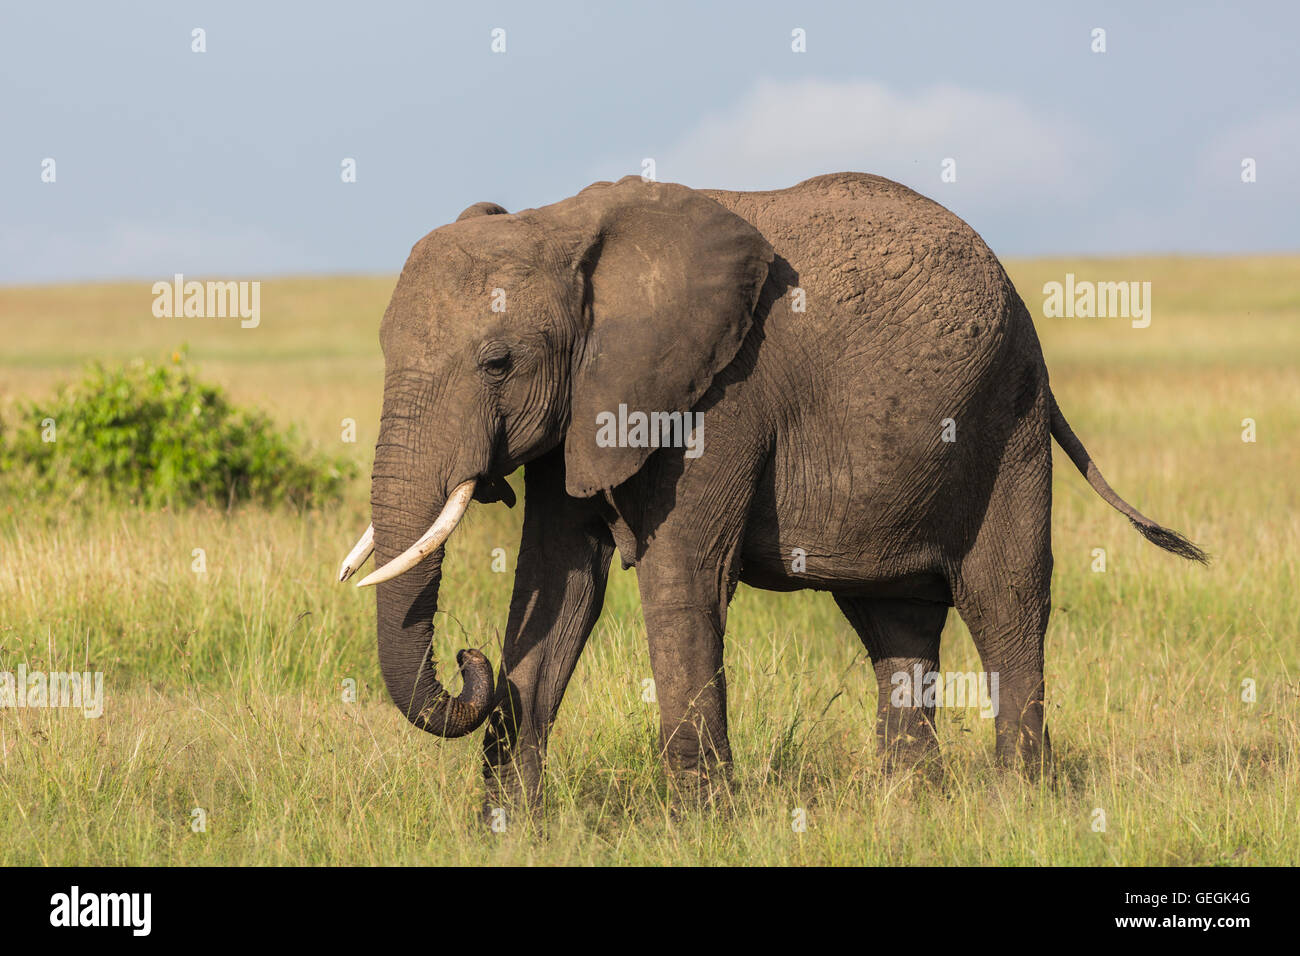 Elephant on the savanna in high grass Masai Mara, Kenya, Africa - Stock Image